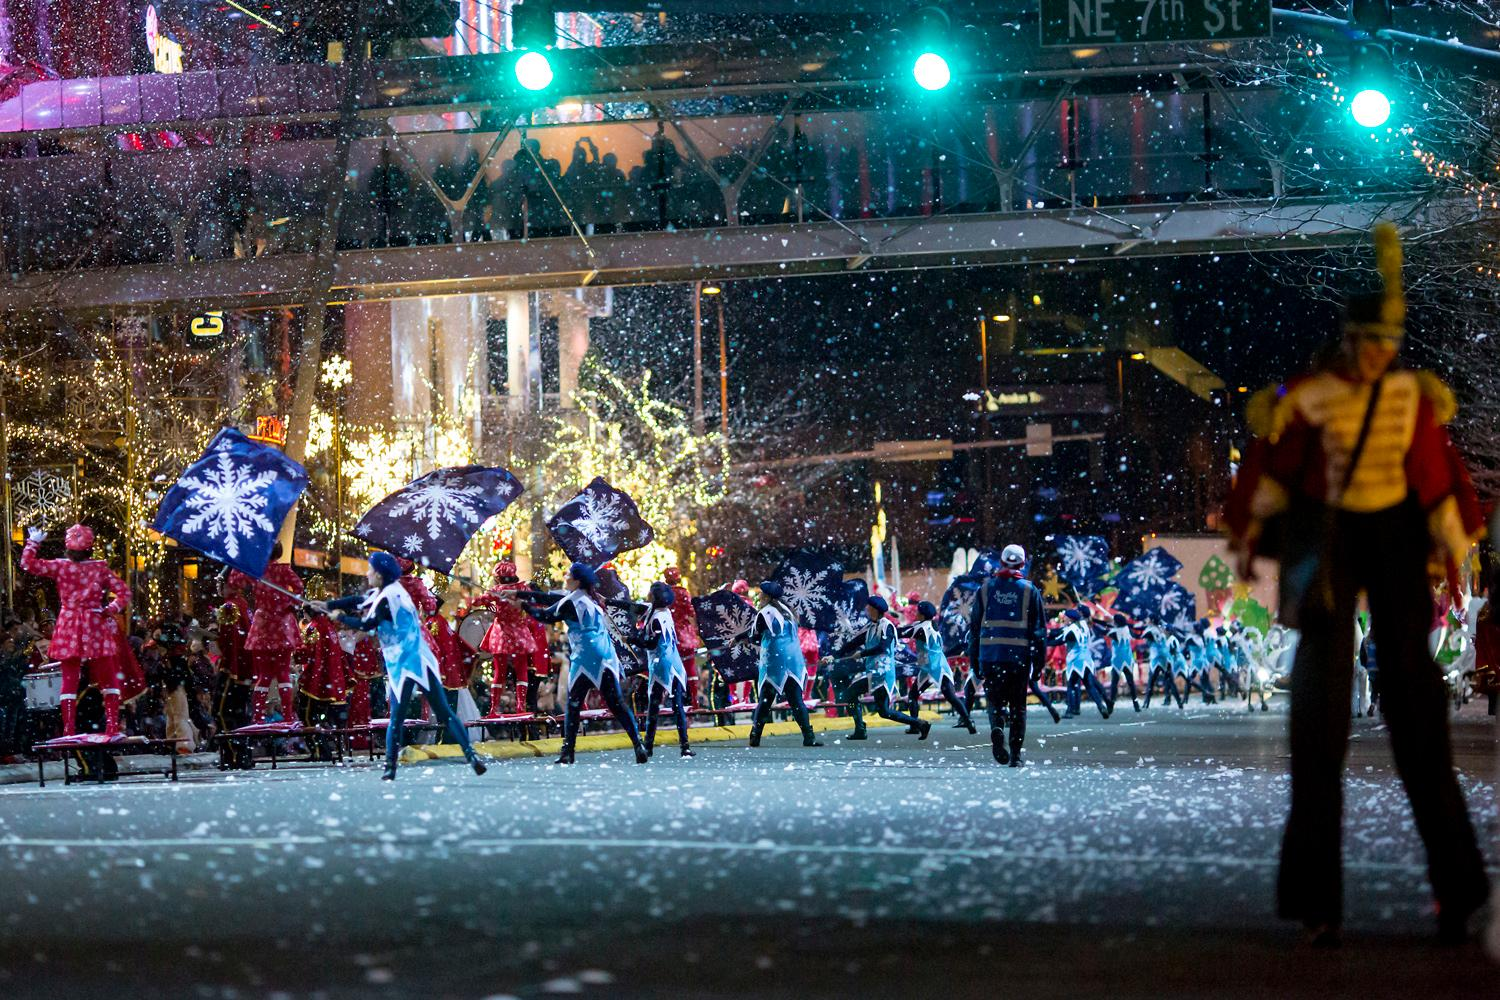 Every night at 7 p.m. through December 24th, Snowflake Lane, produced by the Kemper Freeman Family and The Bellevue Collection, is a magical evening performance for the entire family. It's a holiday spectacle of live toy soldier drummers, music, animated snow characters, glittering lights all surrounded by snow falling every night along Bellevue Way on the street between Bellevue Collection, Lincoln Square and Bellevue Place in Bellevue, Washington. (Image: Sy Bean / Seattle Refined)